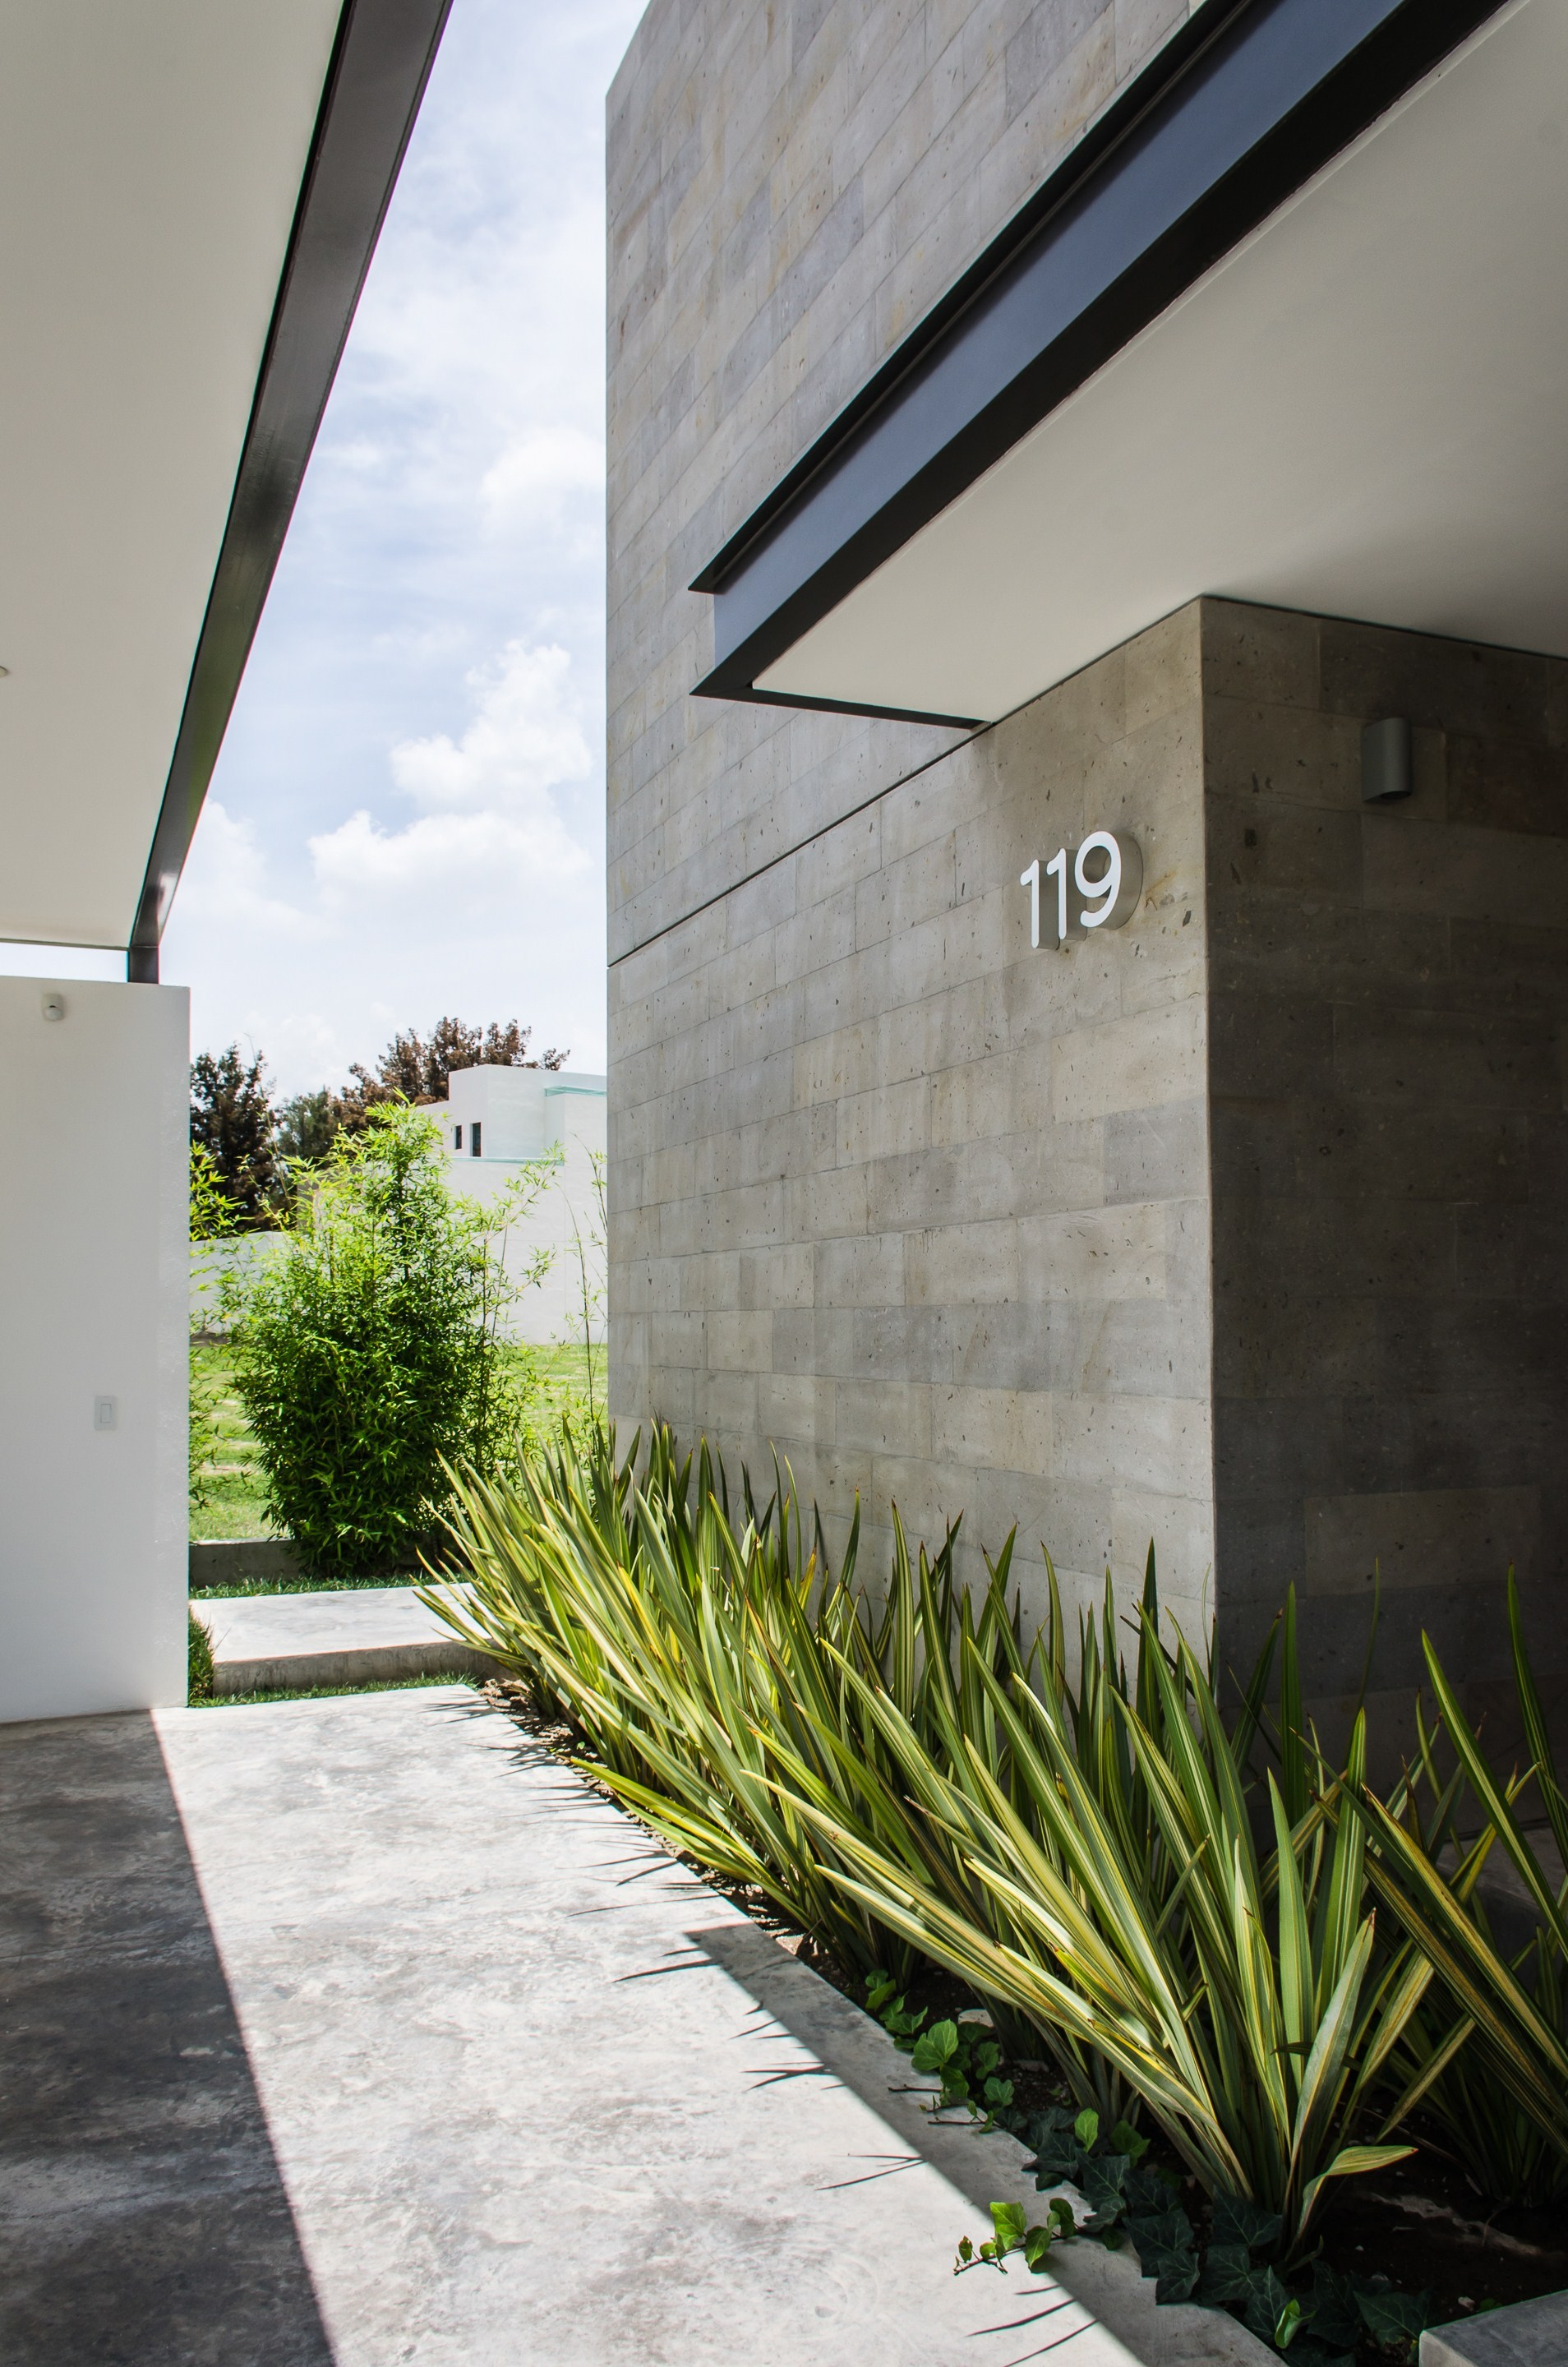 Gallery of t02 adi arquitectura y dise o interior 4 for Arquitectura y diseno interior